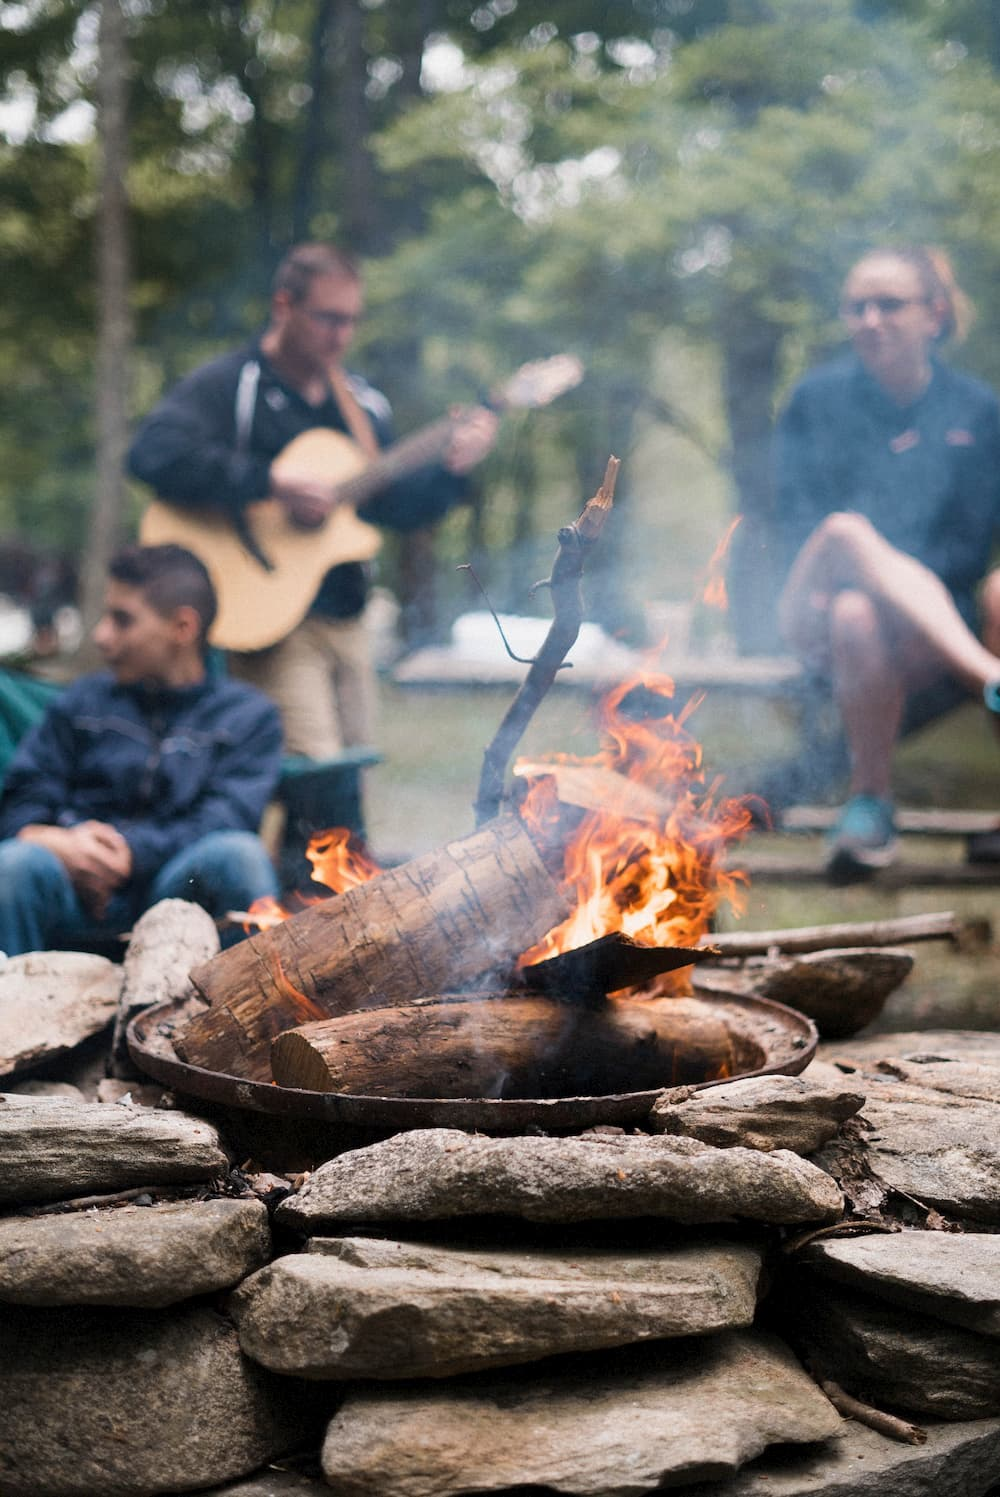 A group of friends gathered around a campfire, playing guitar and chatting